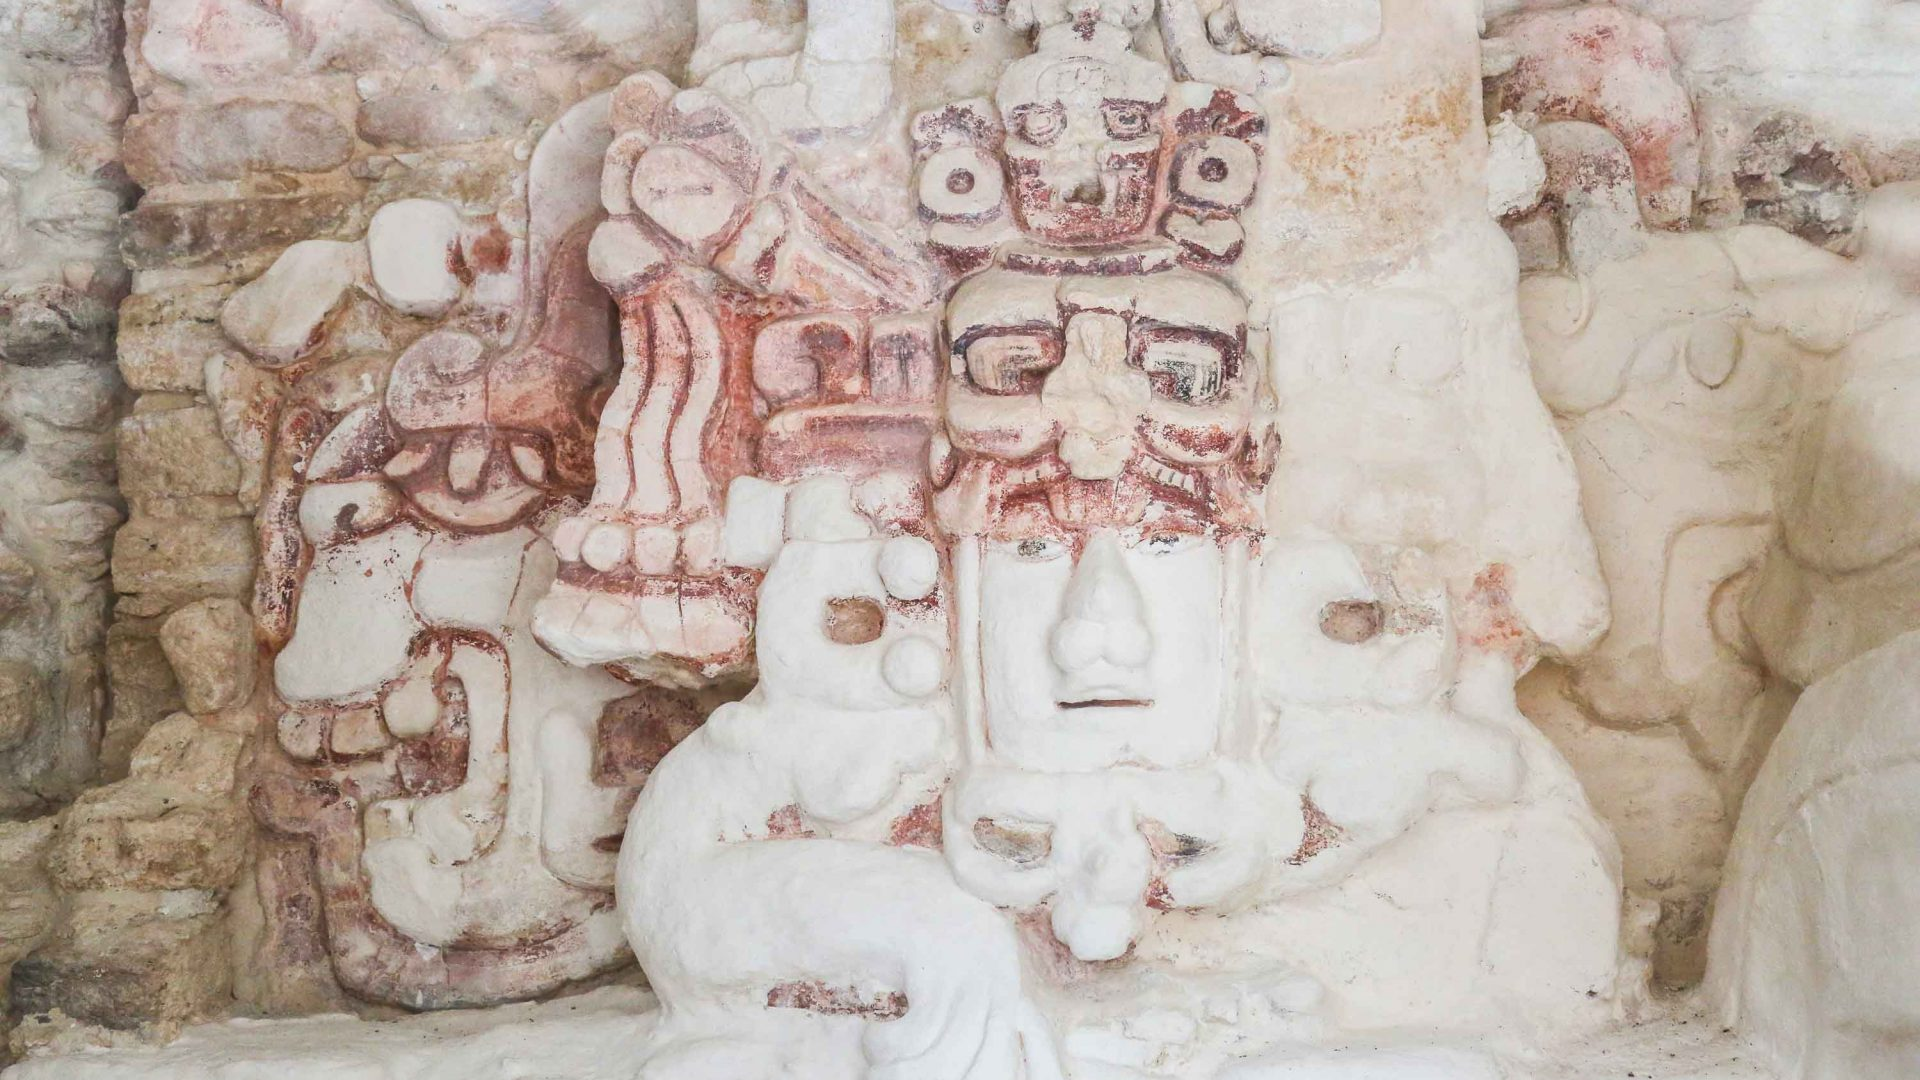 Detail of some of the Becan ruins in the Yucatan Peninsula, Mexico.